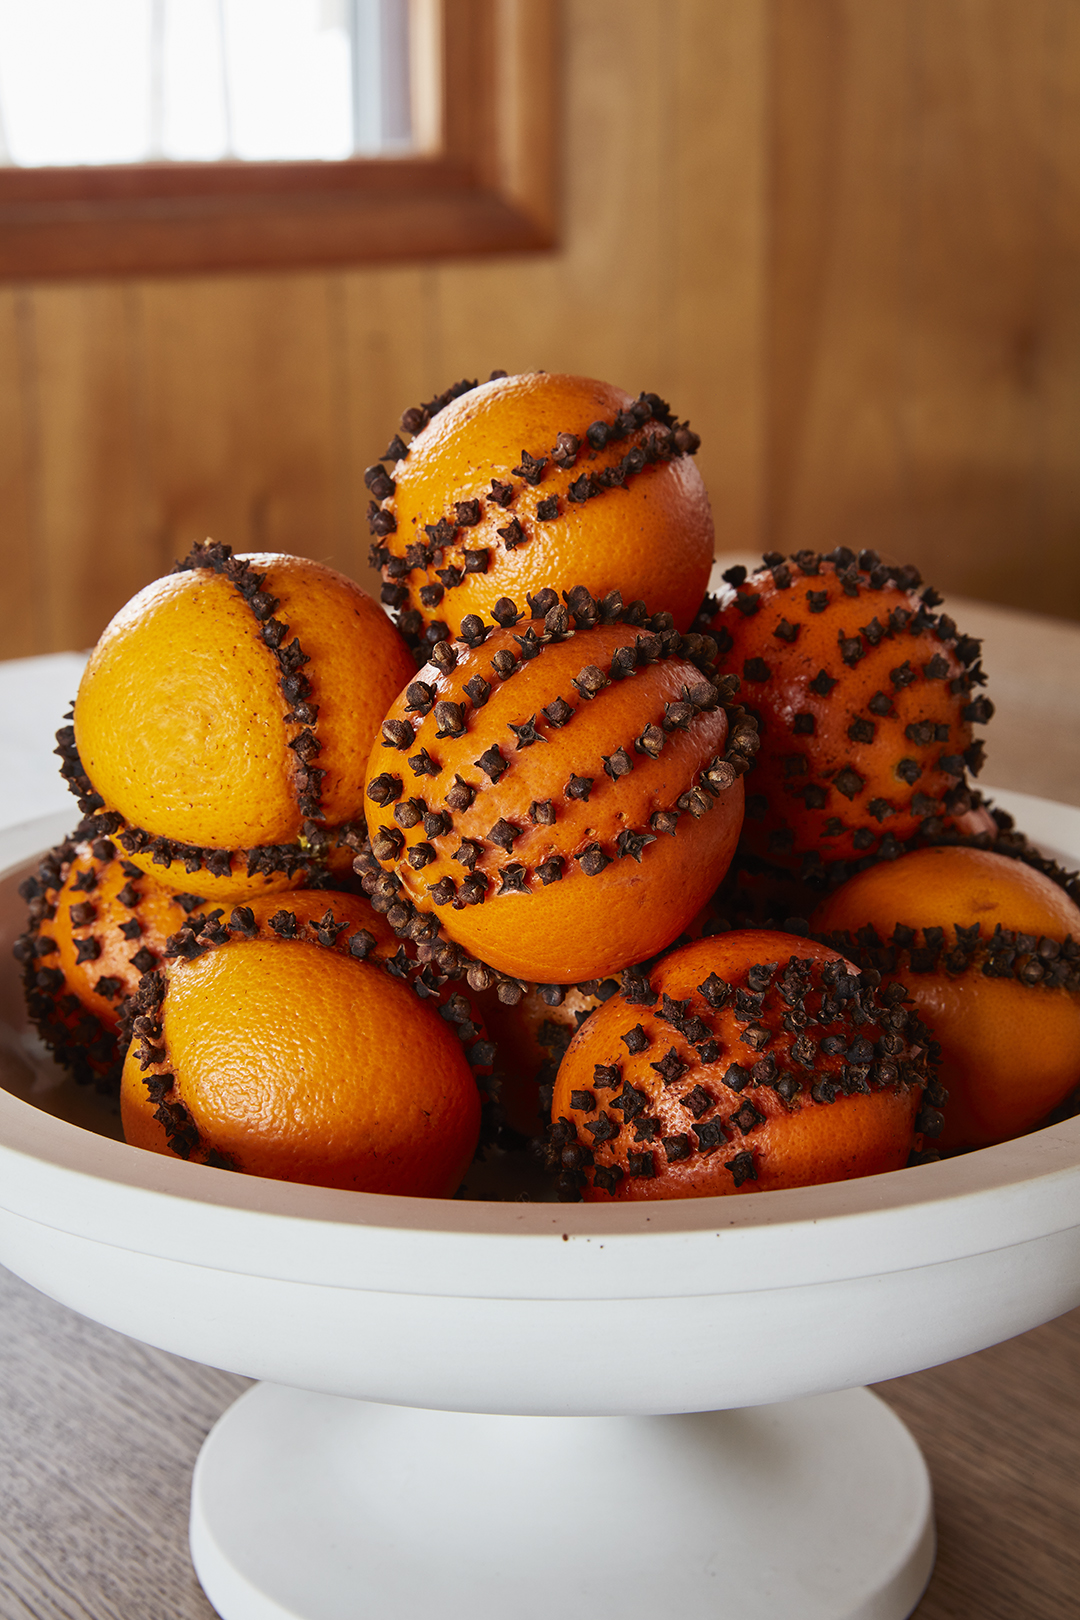 pomander bowl of oranges with cloves